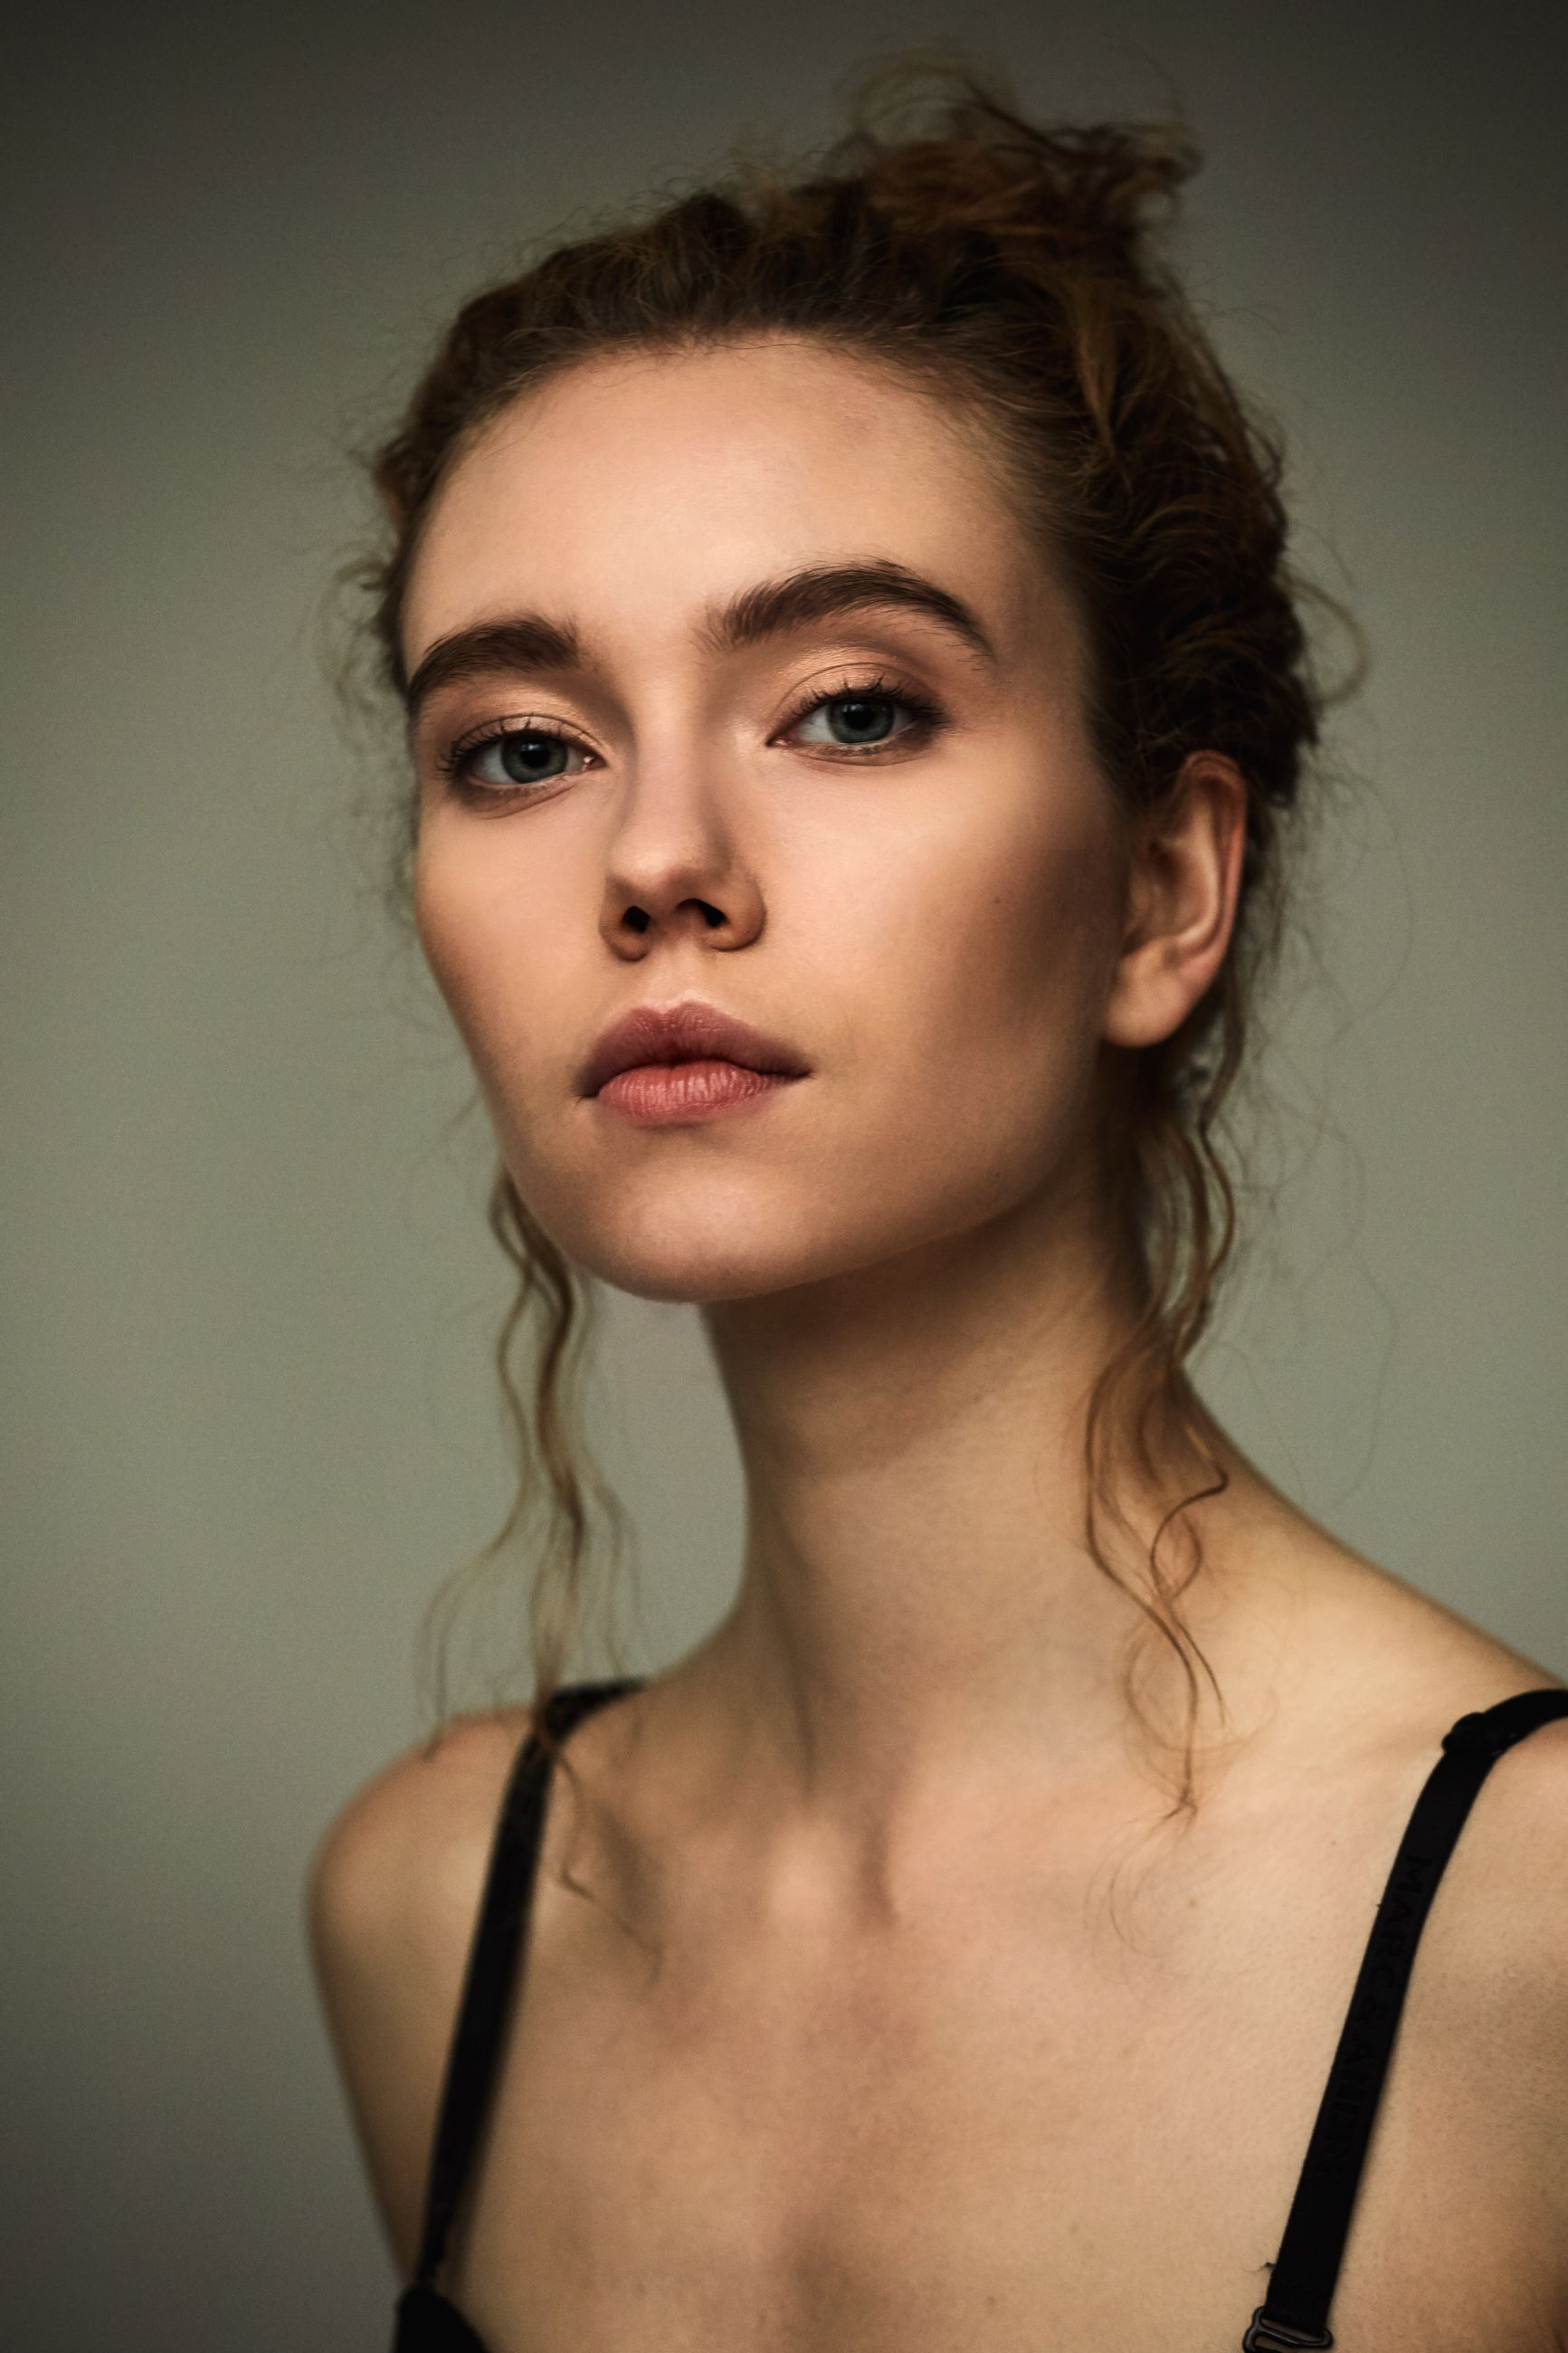 portrait, headshot, one person, indoors, young adult, young women, looking at camera, beauty, front view, beautiful woman, studio shot, hair, hairstyle, close-up, adult, women, wall - building feature, contemplation